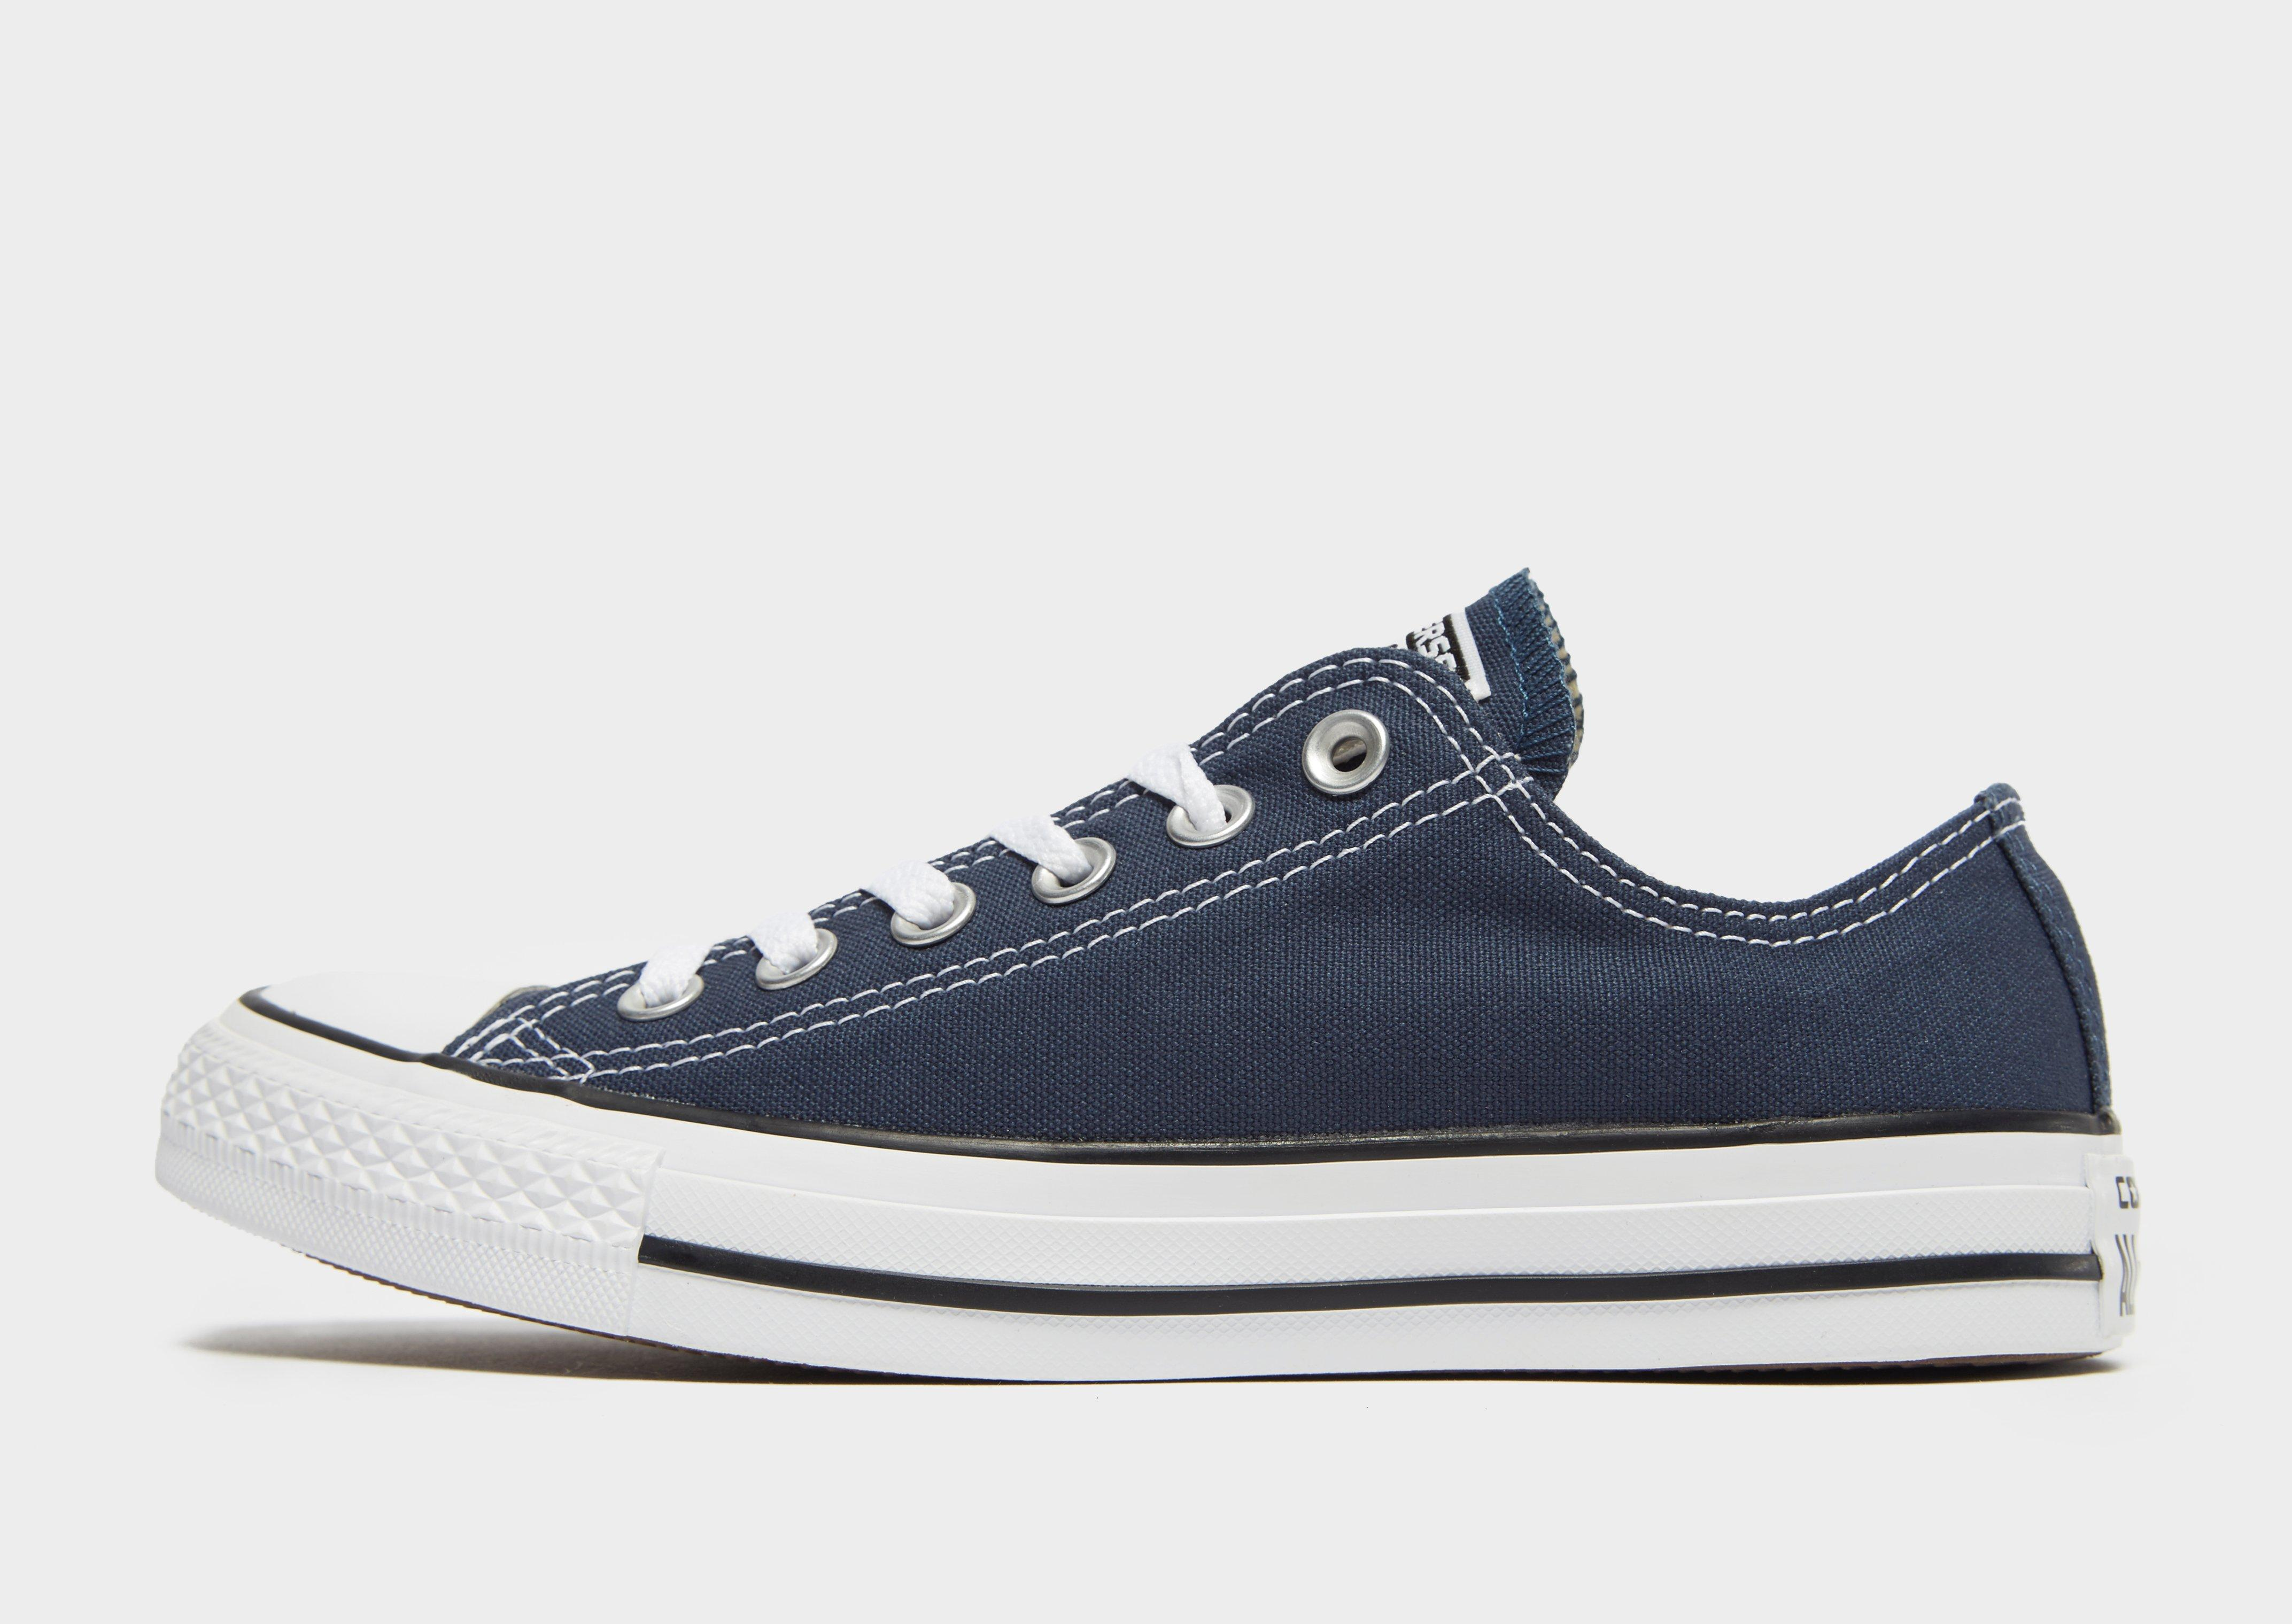 Converse Chuck Taylor Star Core High-top Shoe. Converse All-Star Ox 2aff8c8ce